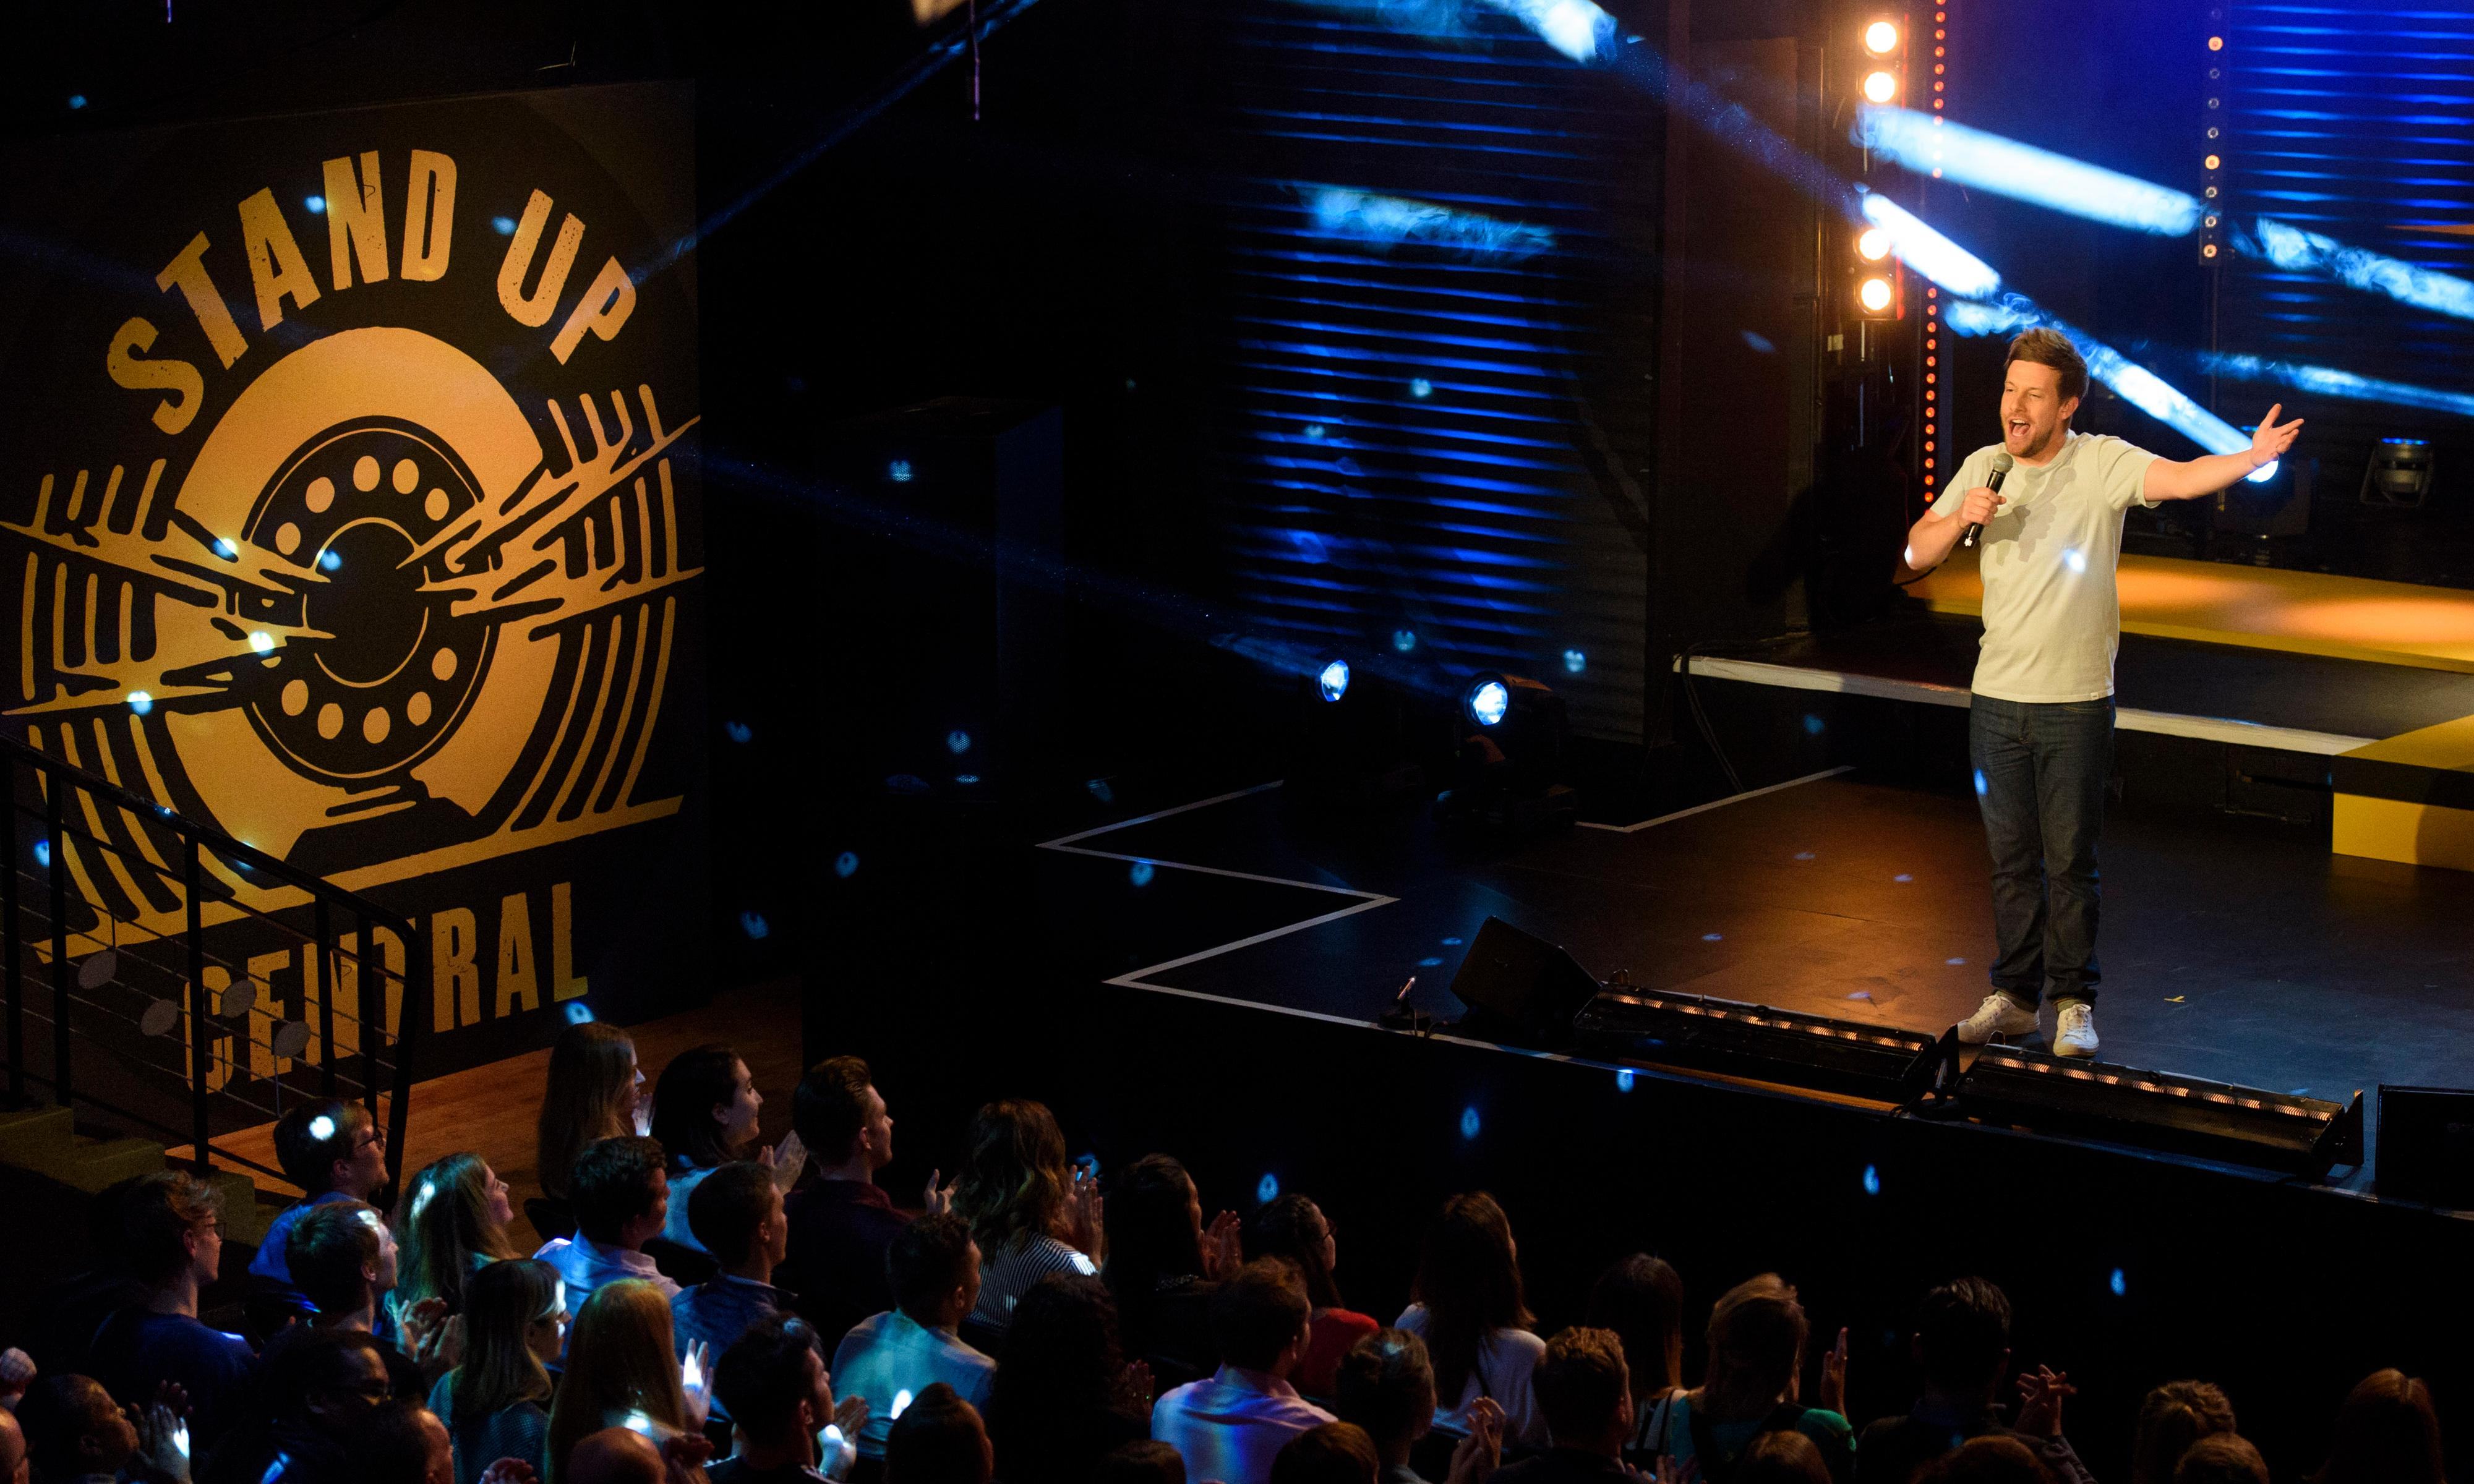 Learning laughter: an expert's guide on how to master standup comedy